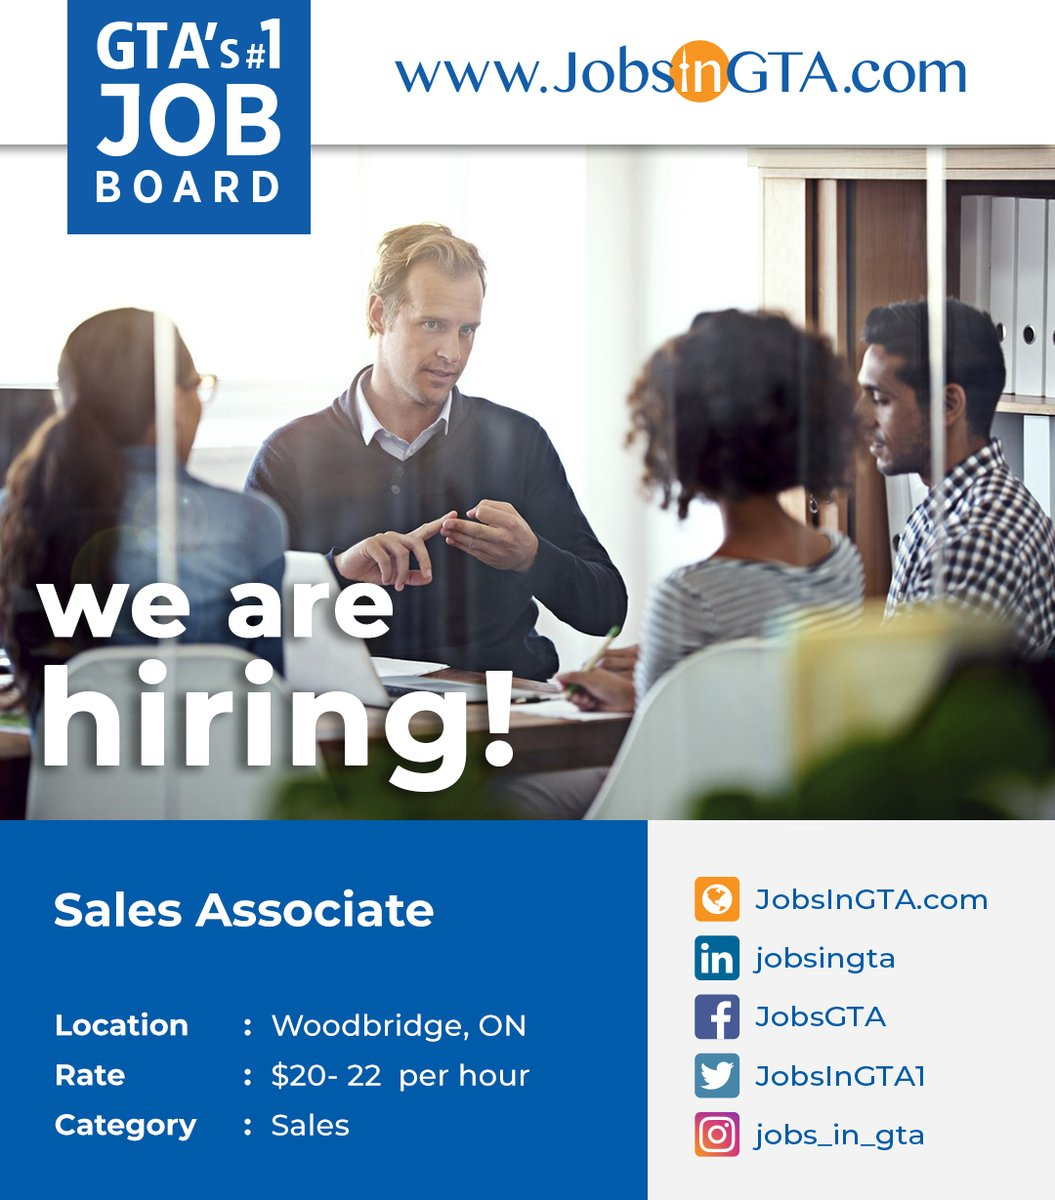 We're hiring ! We're looking for Sales Associate  Apply: https://t.co/dpZLEcieQP  #JobsInGTA #WorkFromHome #SalesJobs #SalesAssociate #Vacancy #Hiring #jobs #TorontoJobs #FridayMotivation #HappyWeekend #Ontario #GTA #Woodbridge #NorthYork #Canada https://t.co/im9oUXpDc9